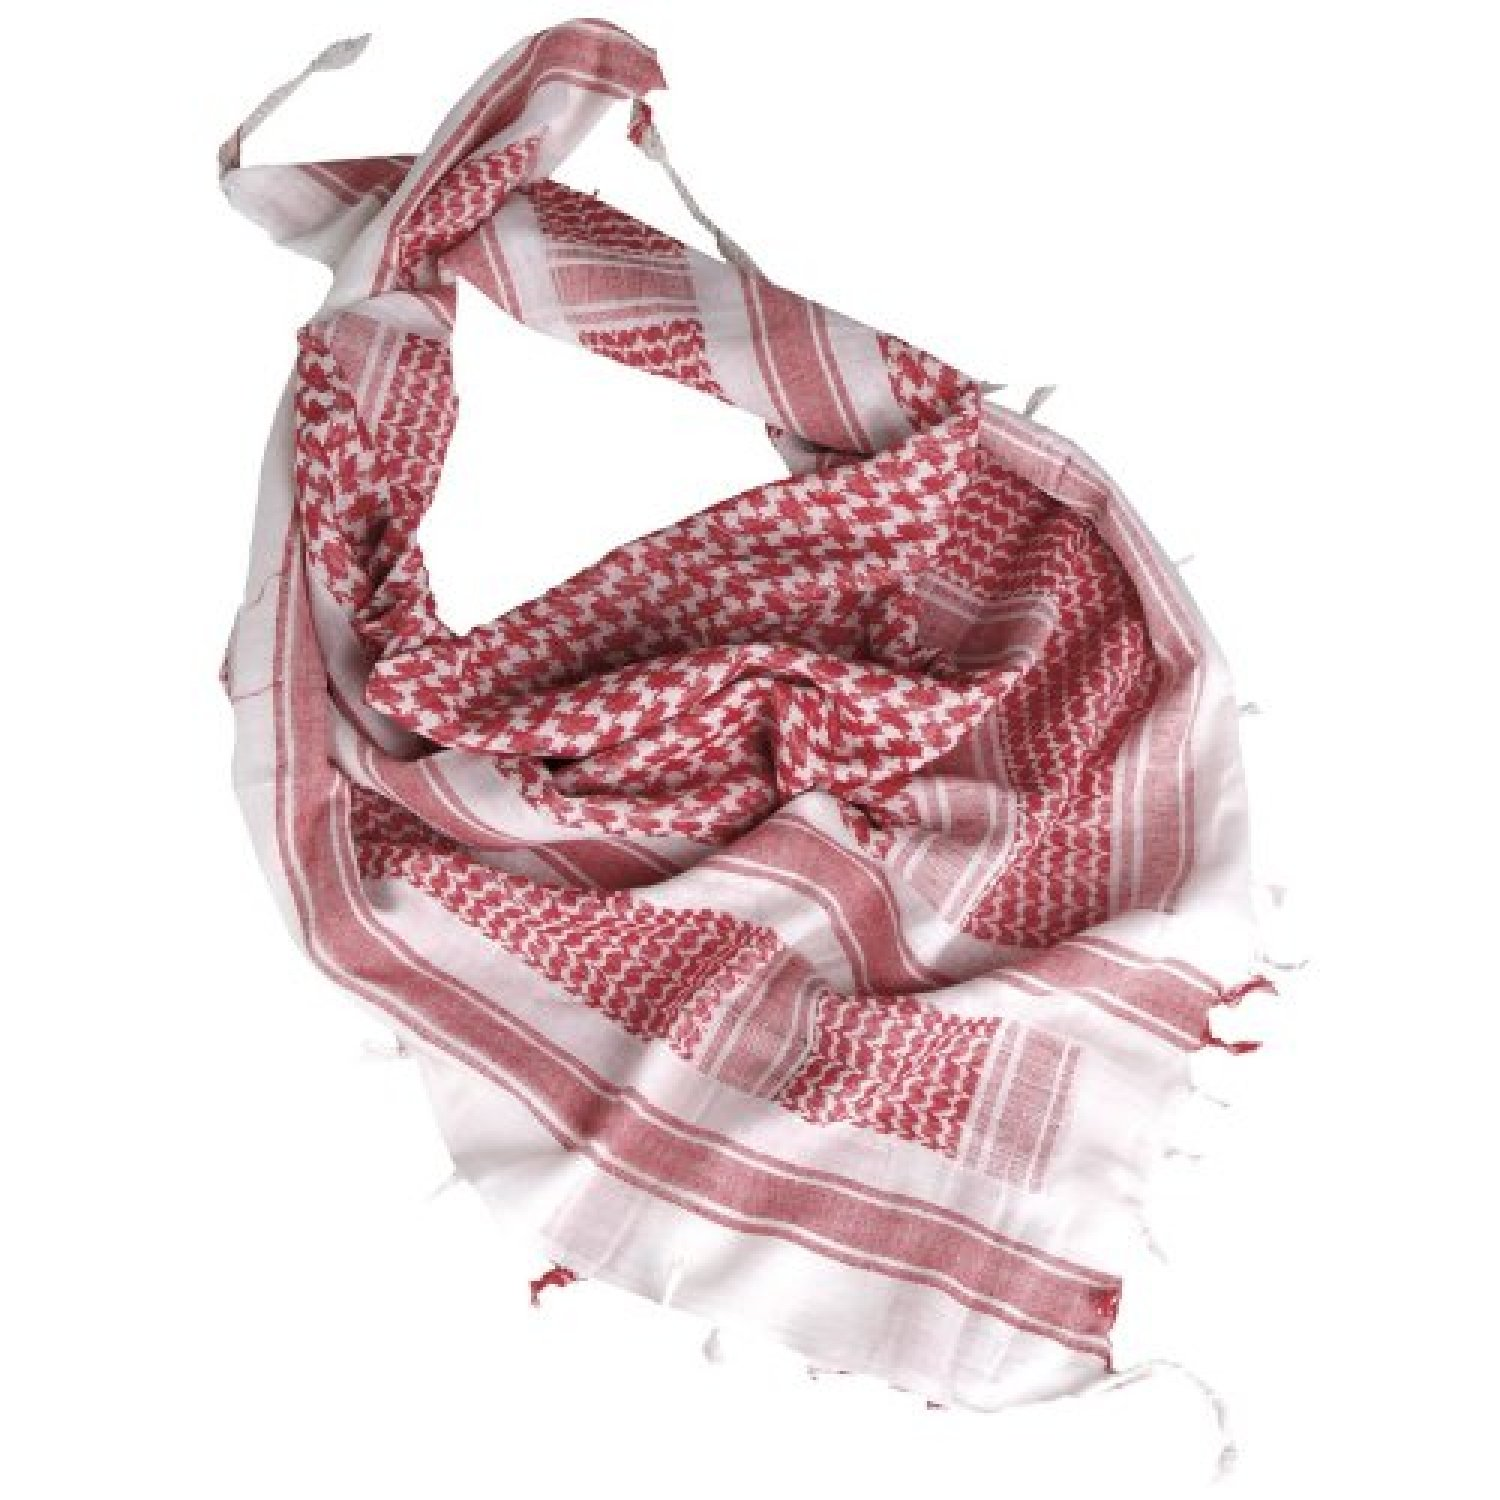 Mil-Tec Men s Tactical Shemagh Army Scarf Military Shermag Head Wrap One Size White Red